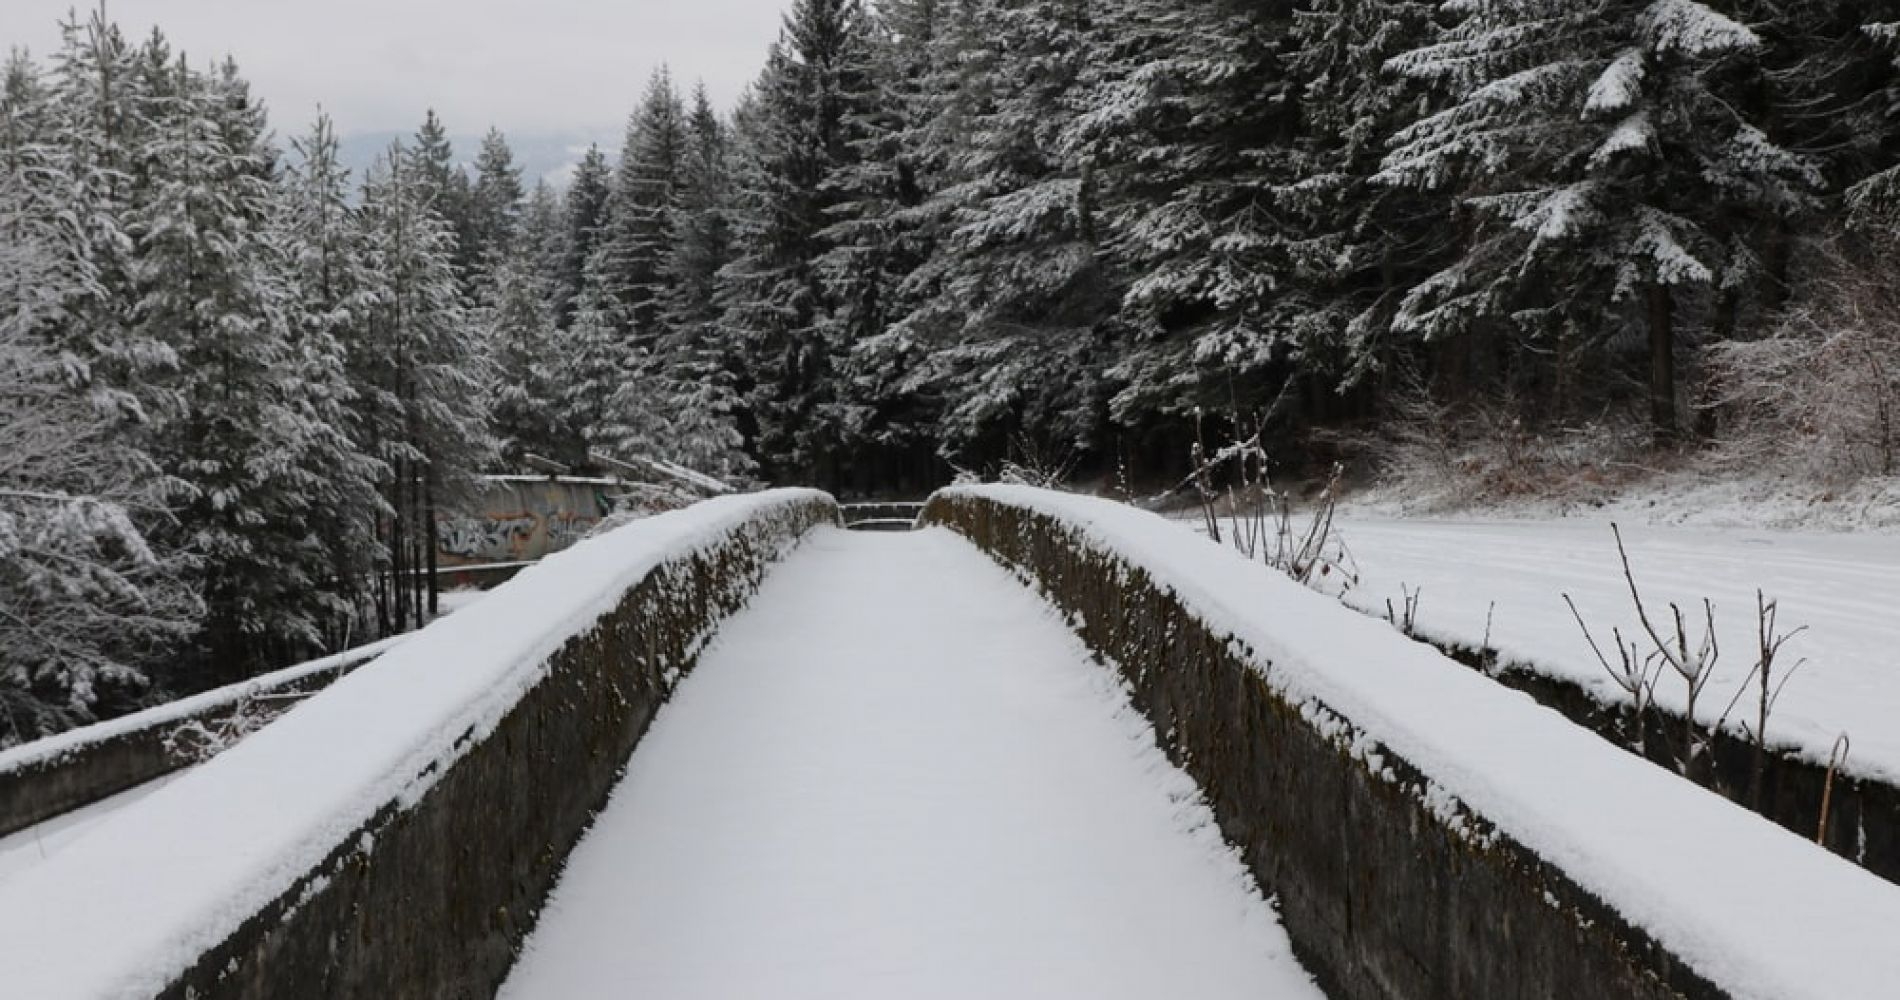 Walk Sarajevo Olympic Bobsleigh and Luge Track in Bosnia